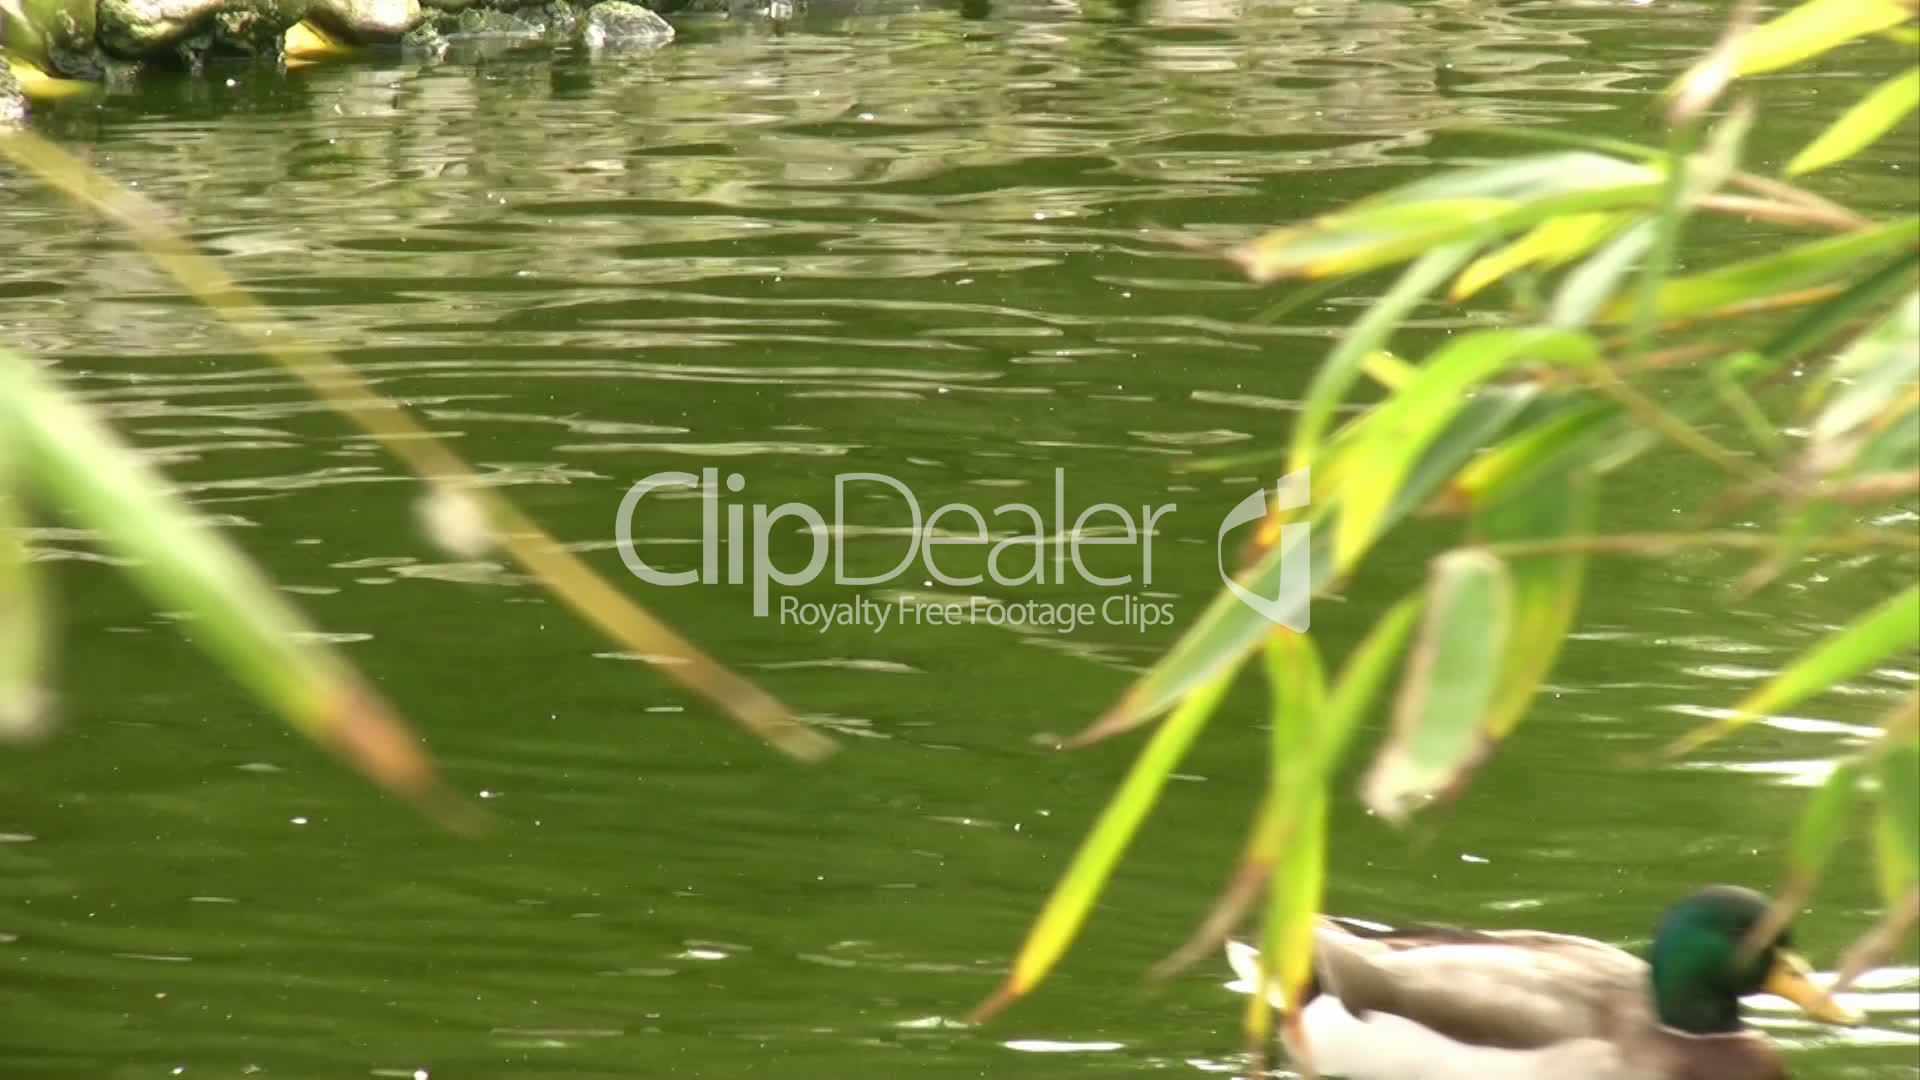 Ducks swimming in pond: Royalty-free video and stock footage